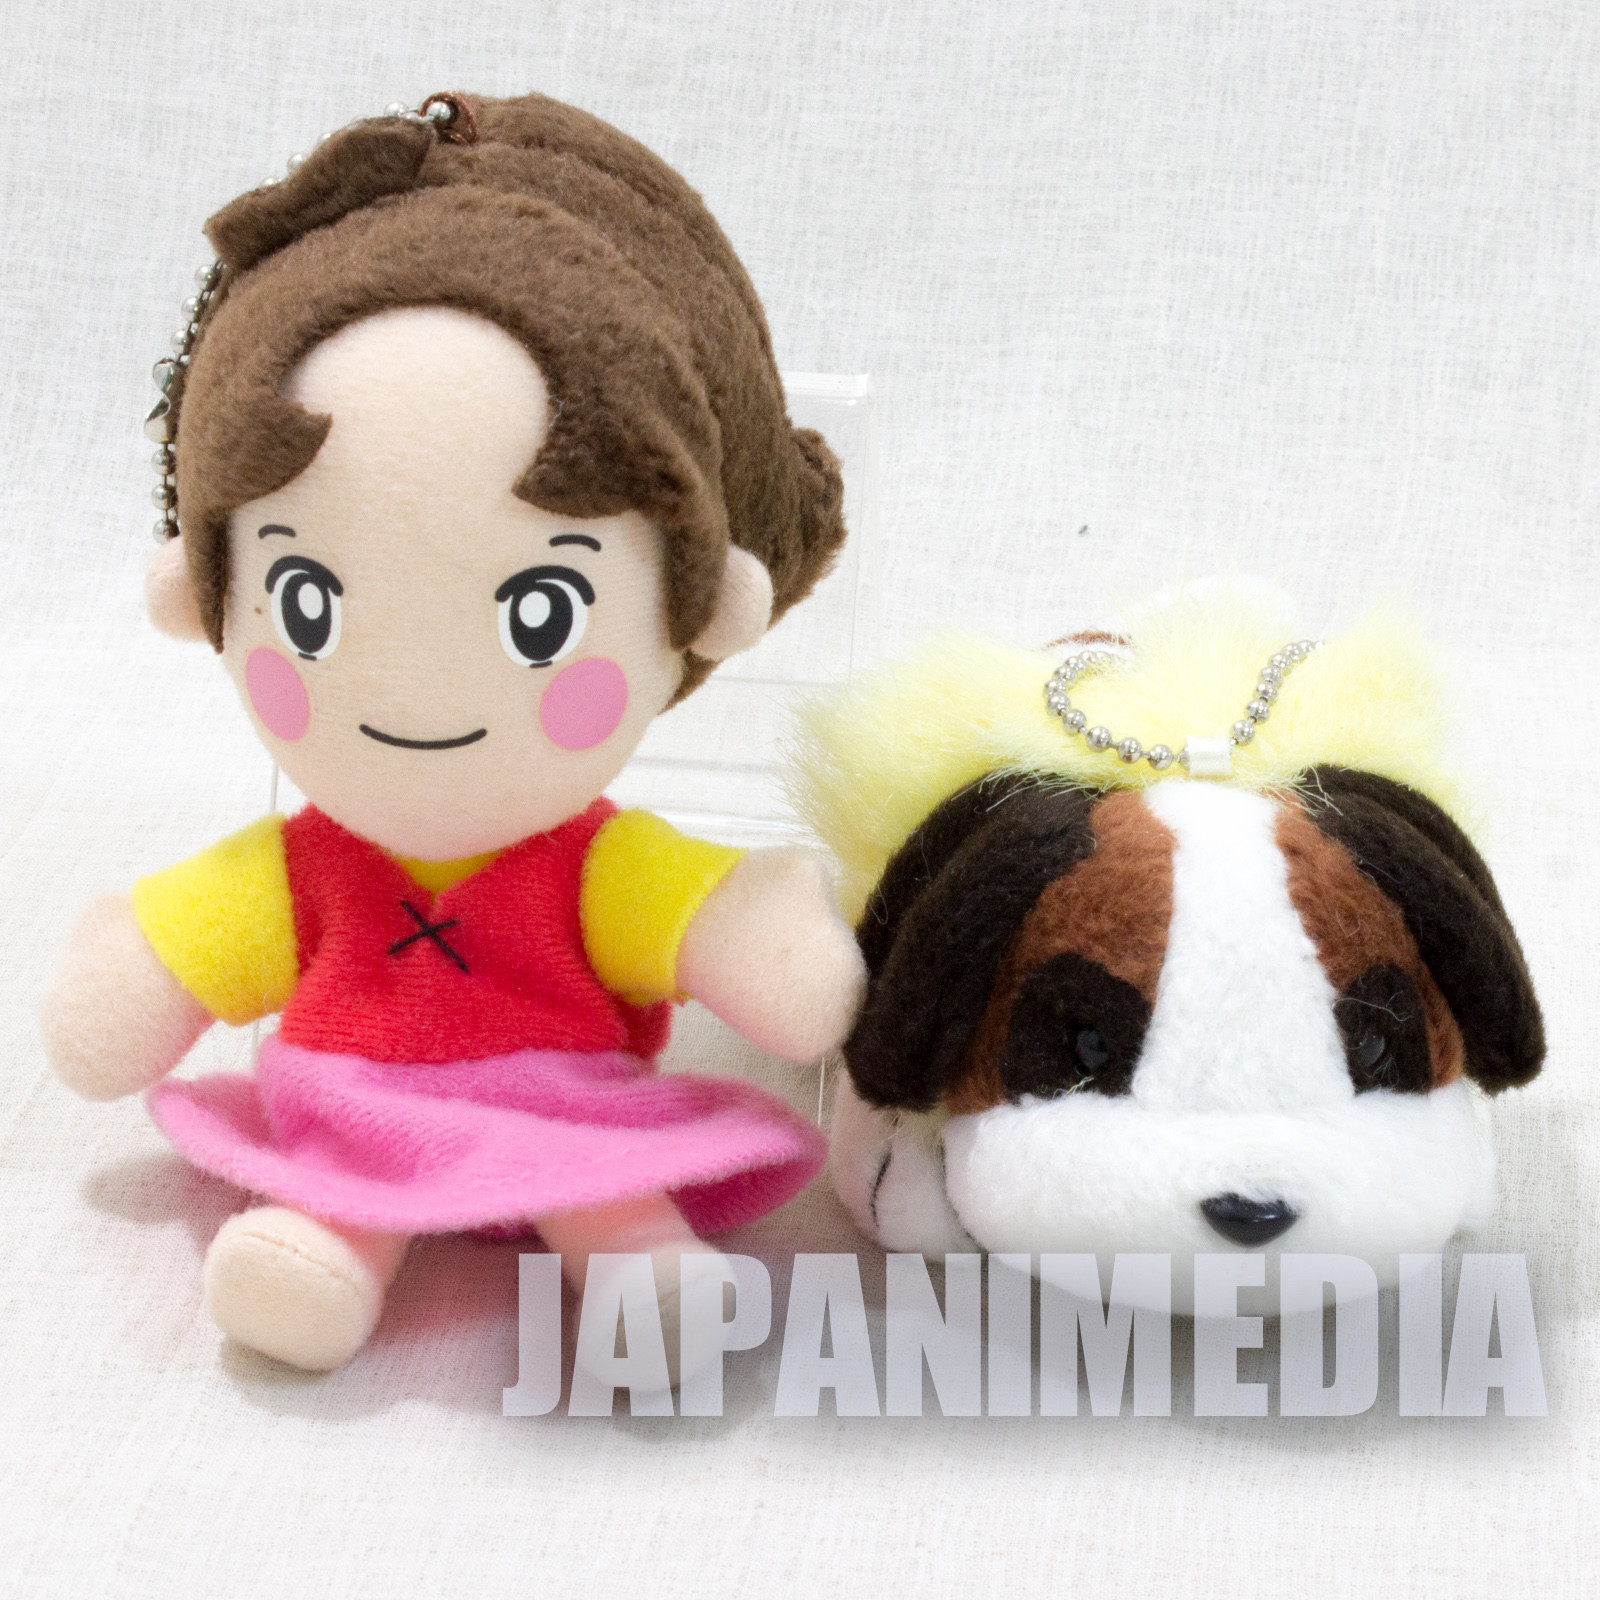 Heidi Girl of the Alps Heidi  + Josef Mini Plush Doll Set JAPAN ANIME